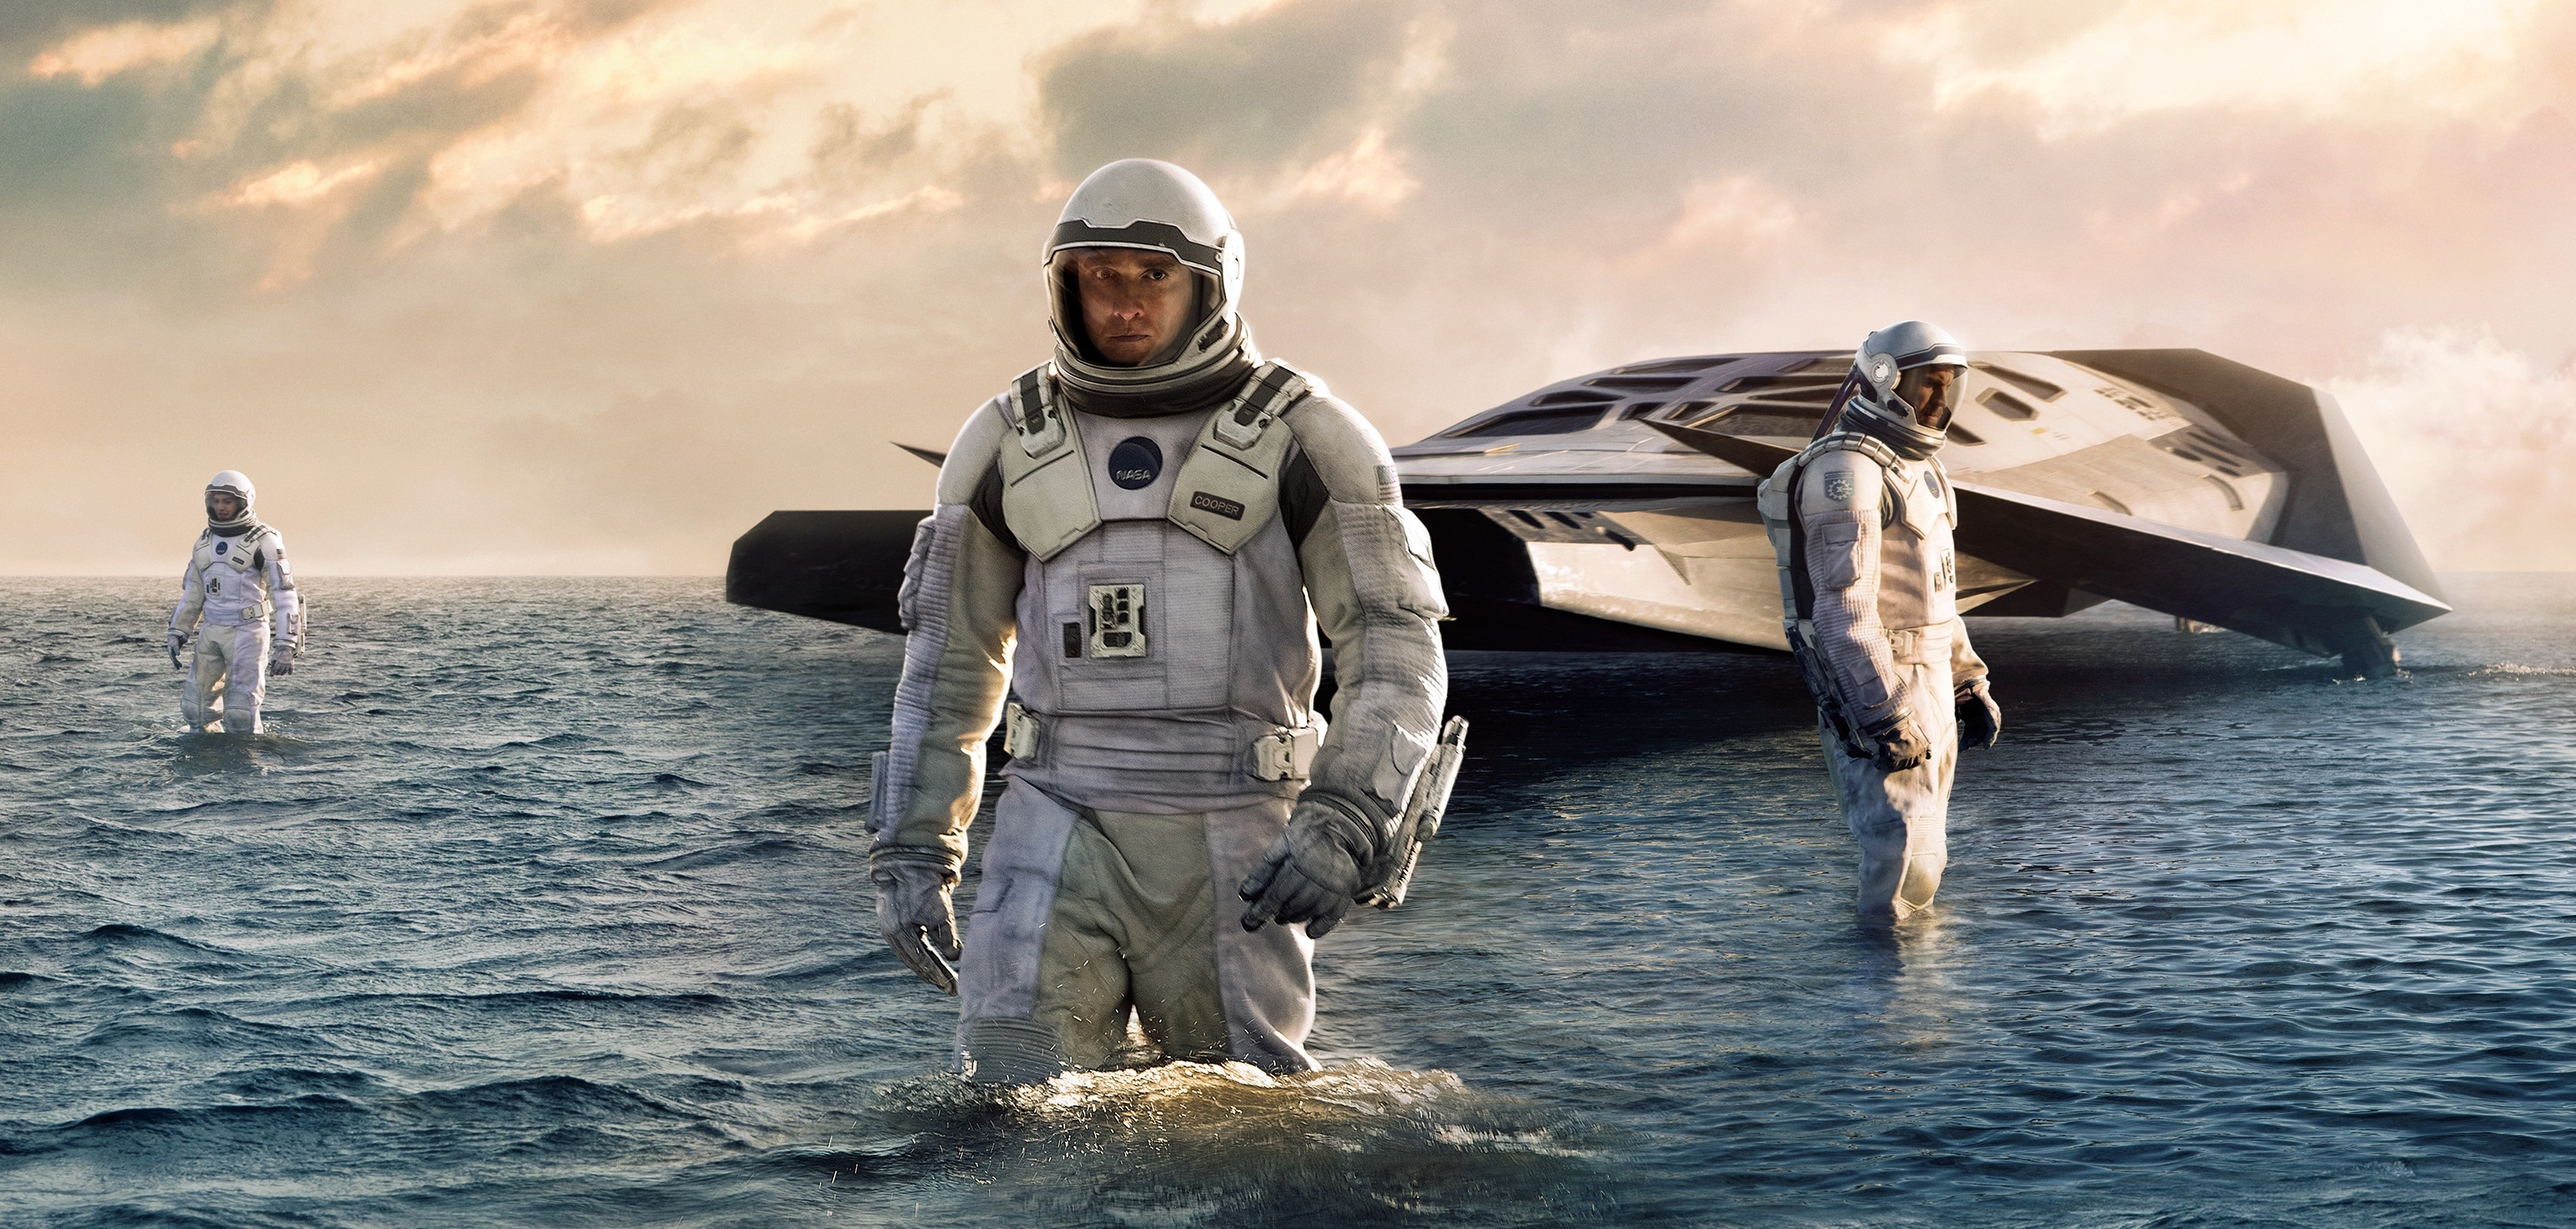 Interstellar (2014) Directed by Christopher Nolan - Movie Review